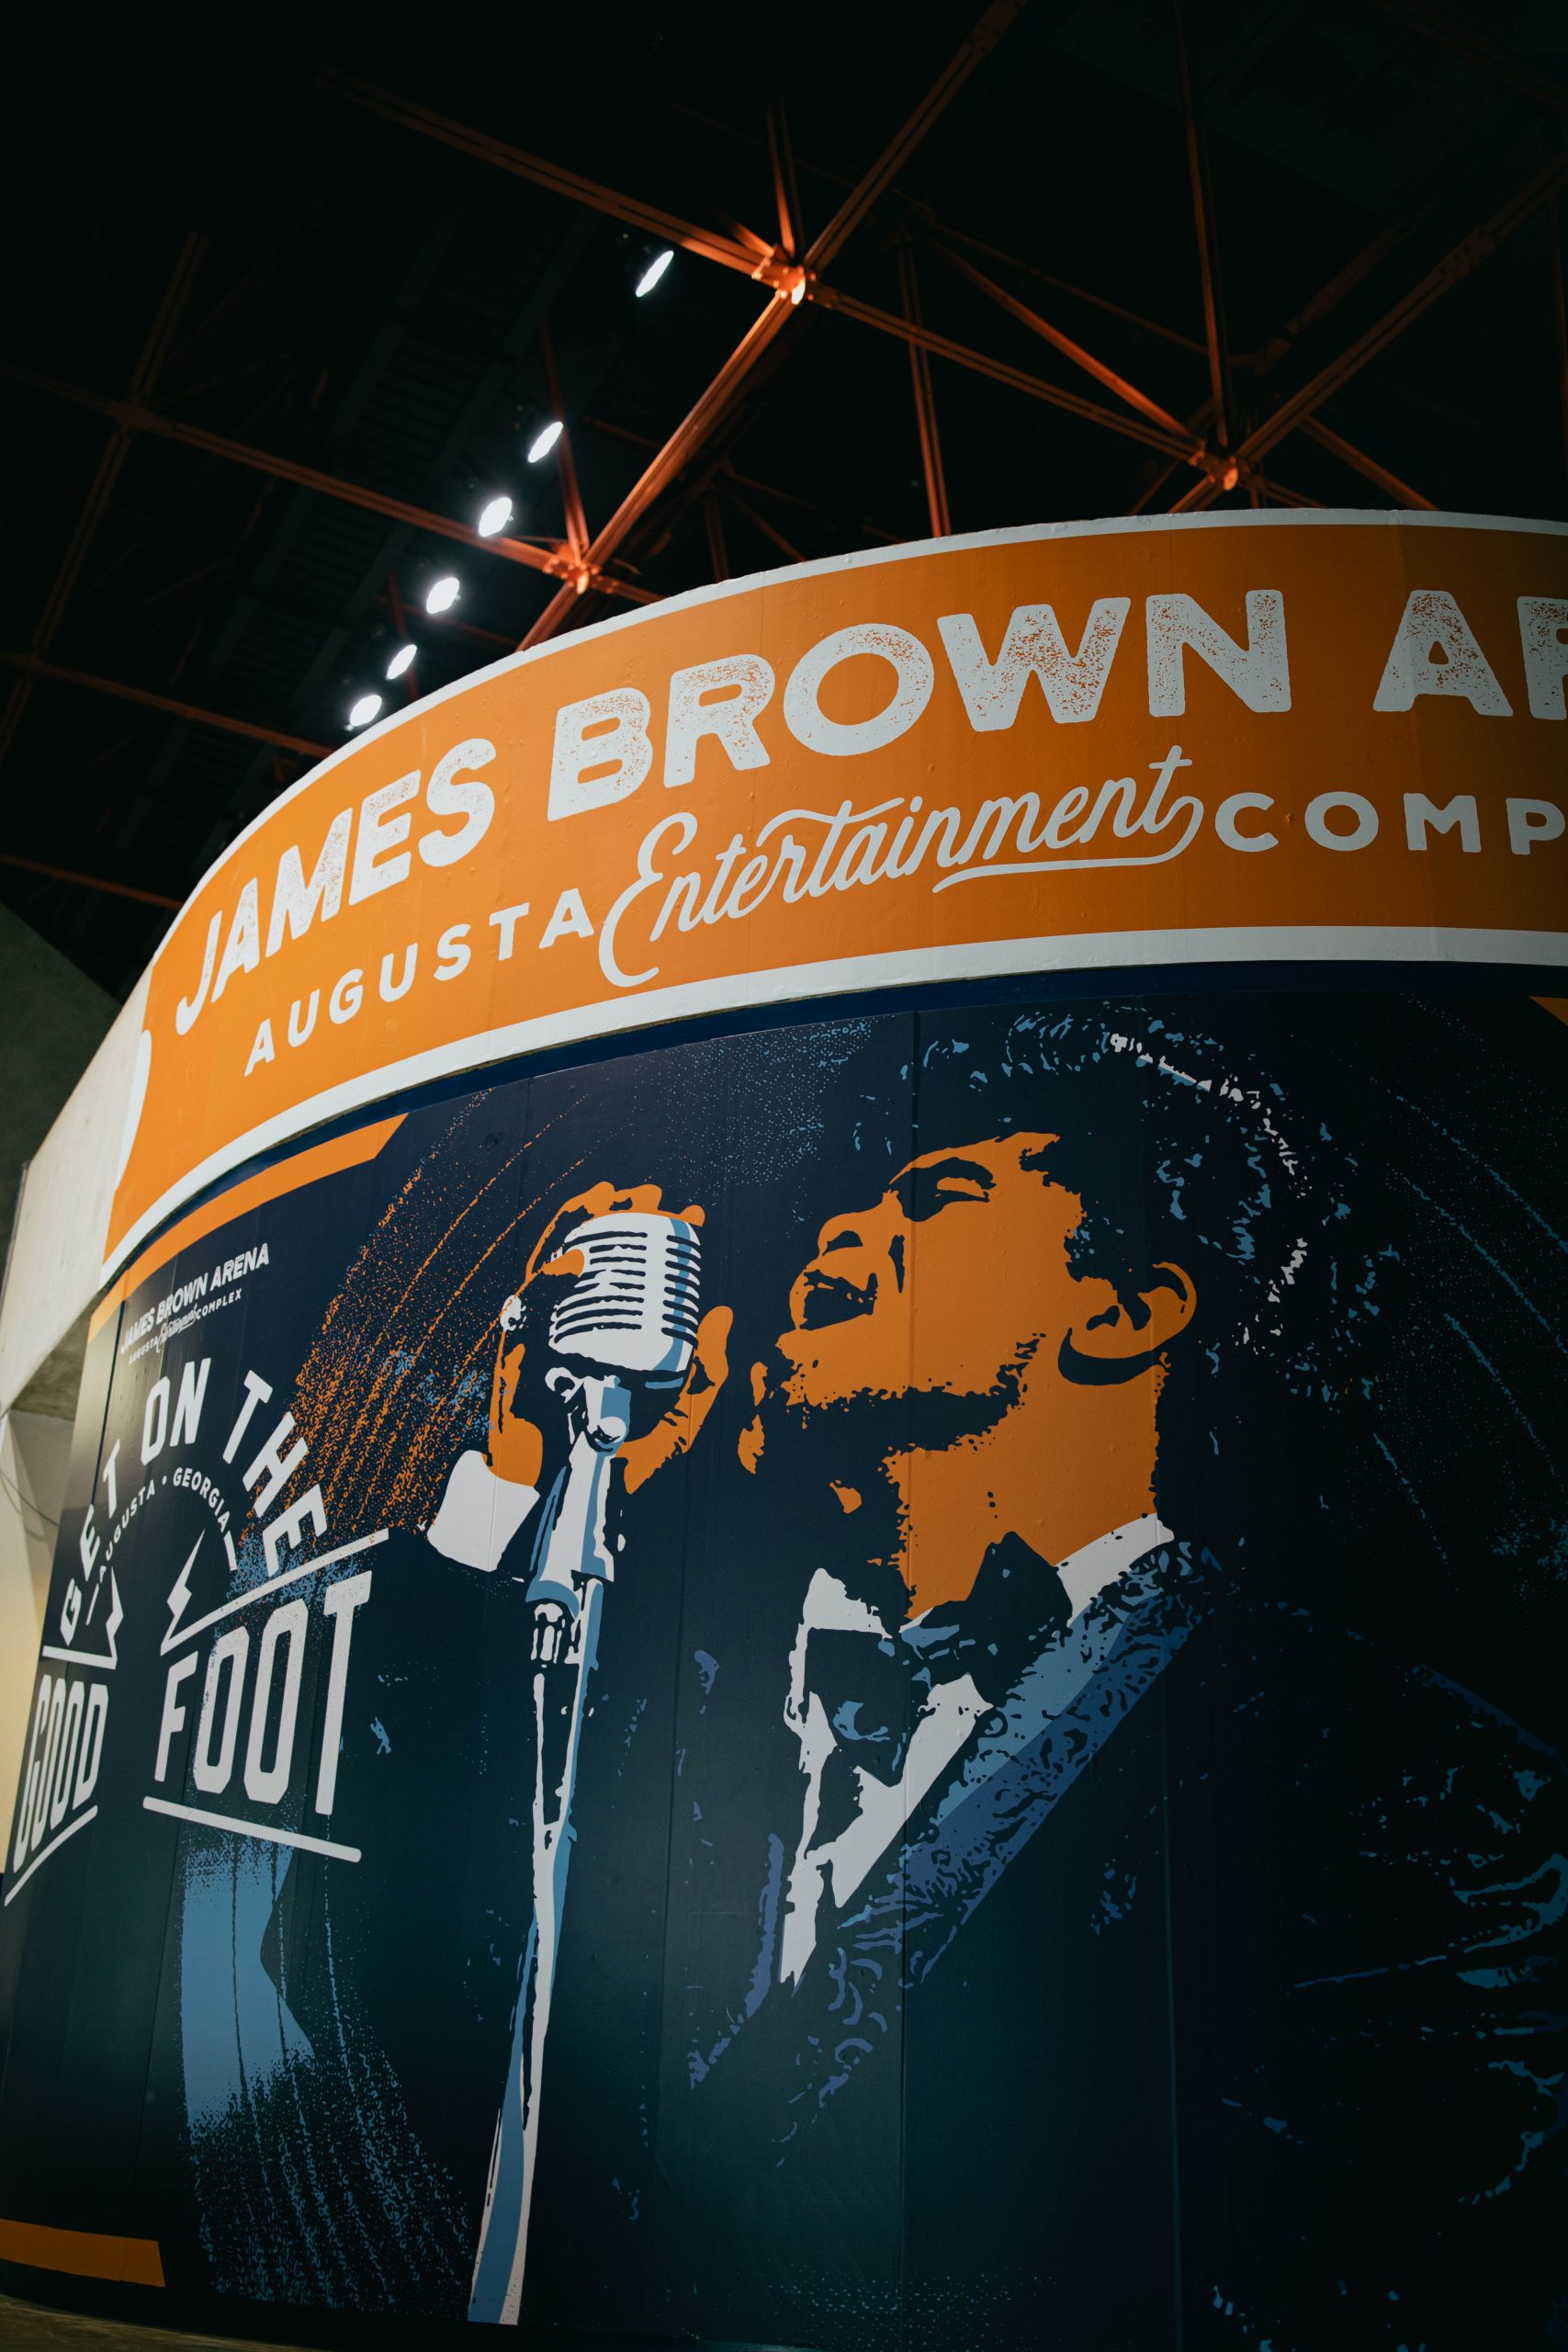 James Brown Arena Wall Design